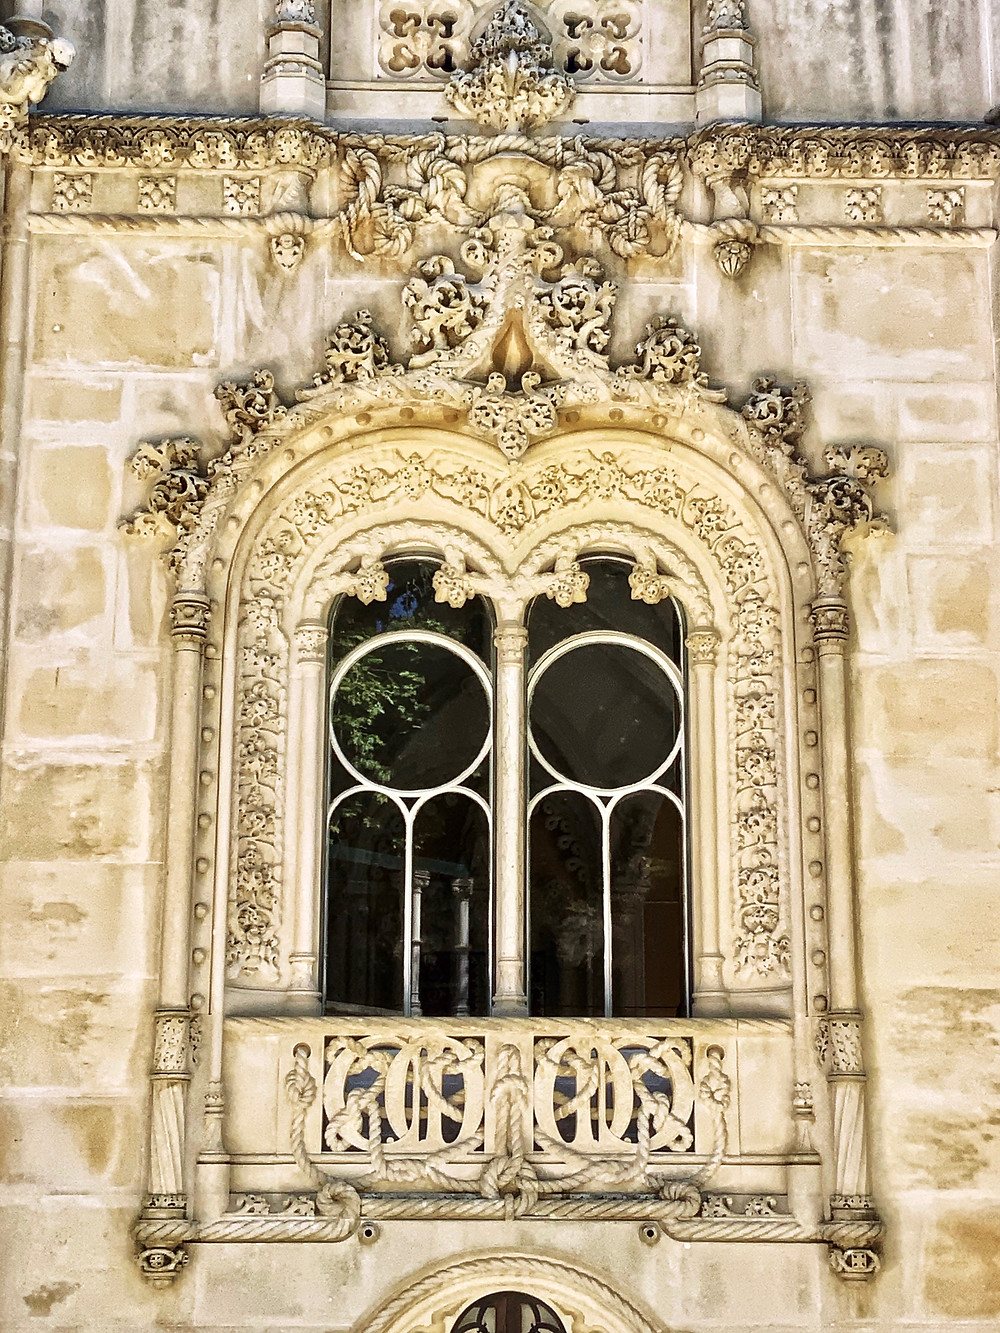 an ornately carved Neo-Manueline style window on the exterior